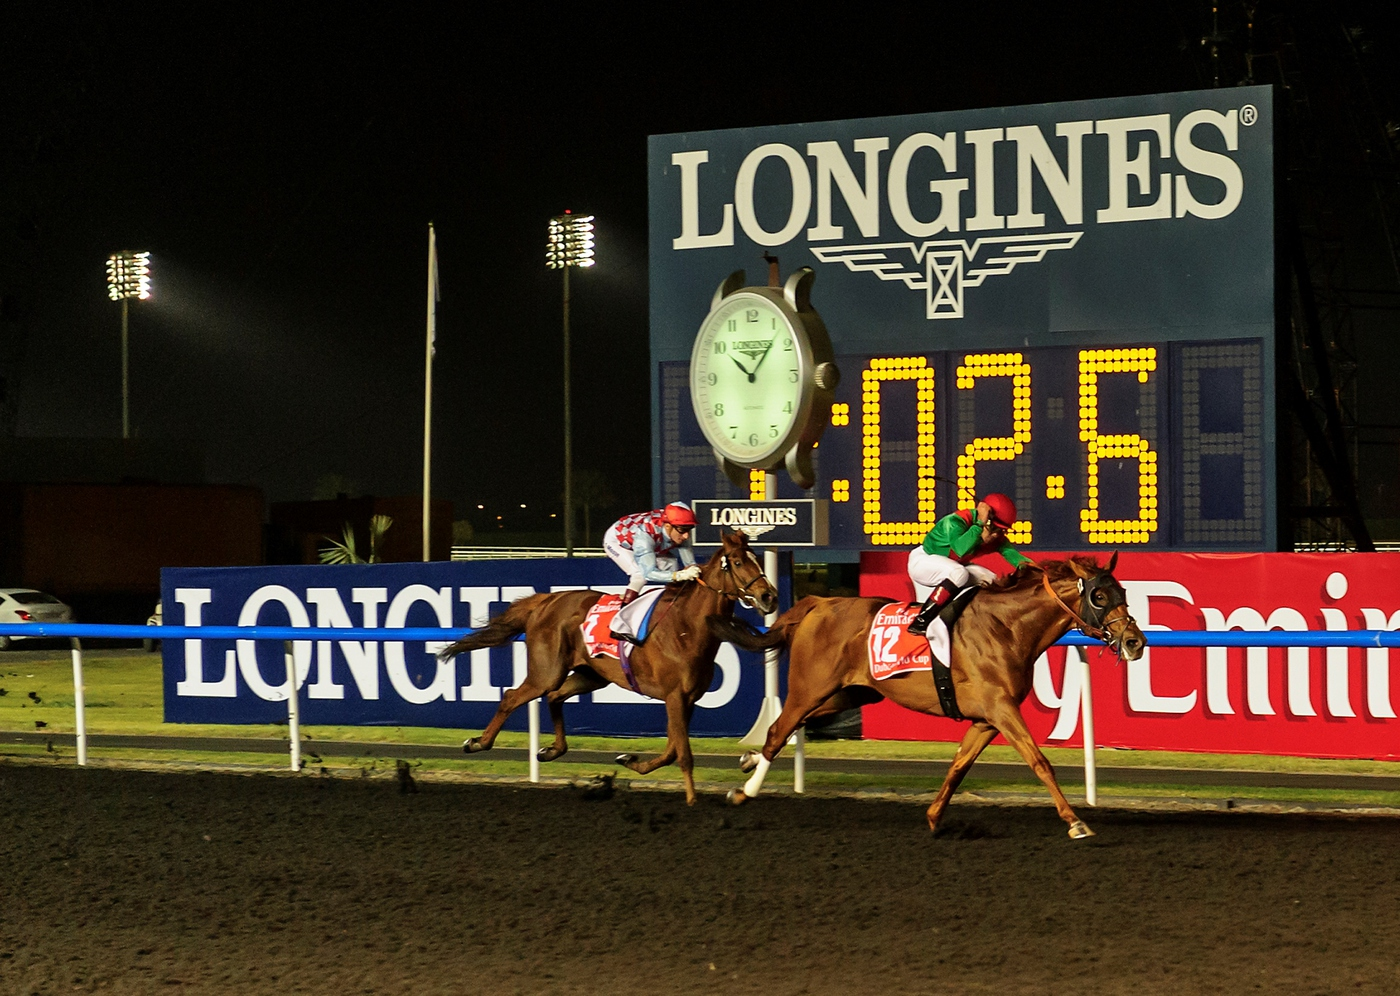 Longines Flat Racing Event: Longines adds its touch of elegance to the Dubai World Cup 4